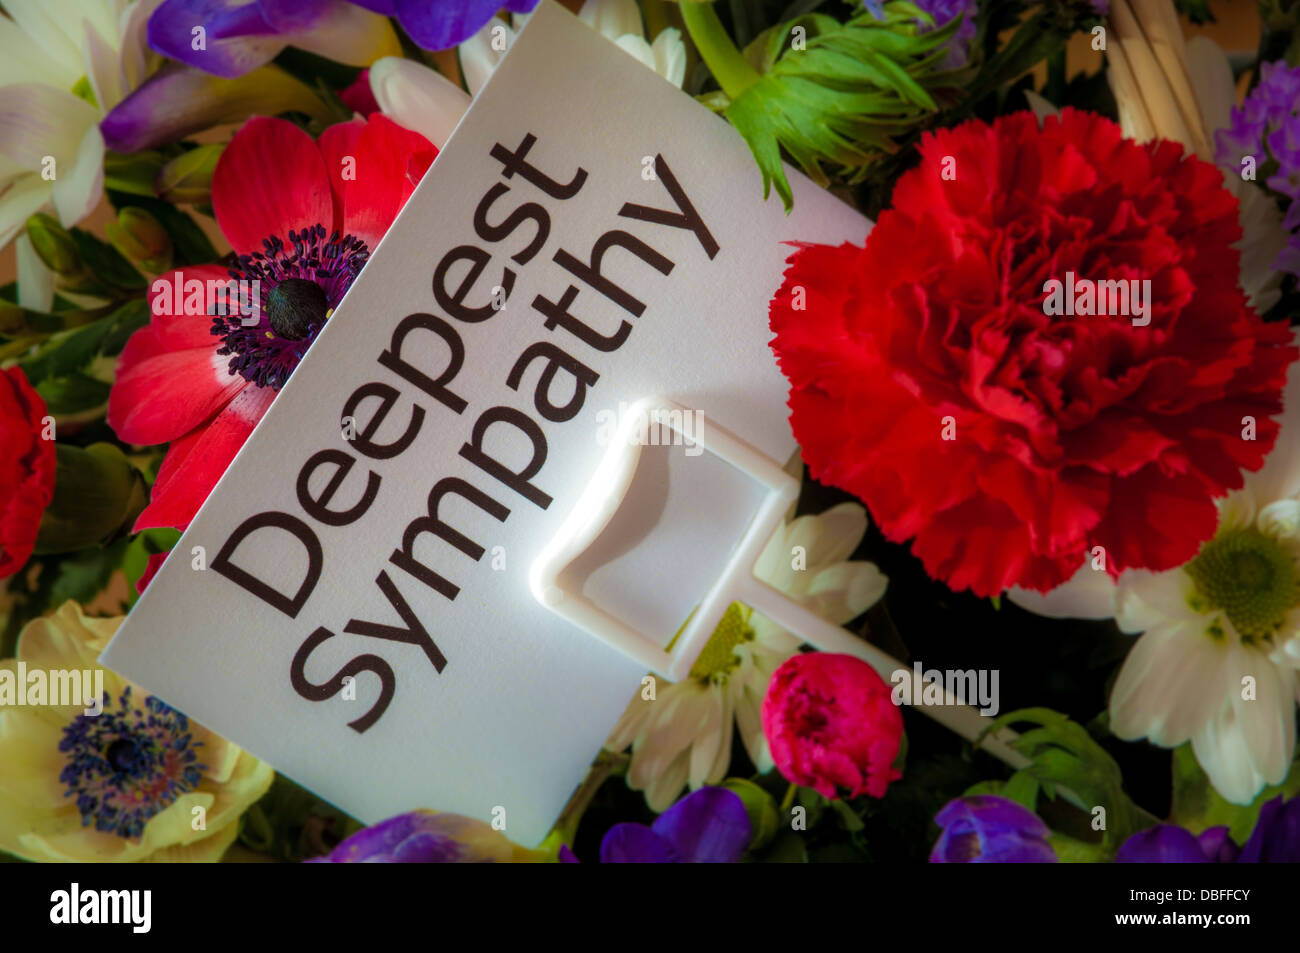 Sympathy Flowers Stock Photos & Sympathy Flowers Stock Images - Alamy